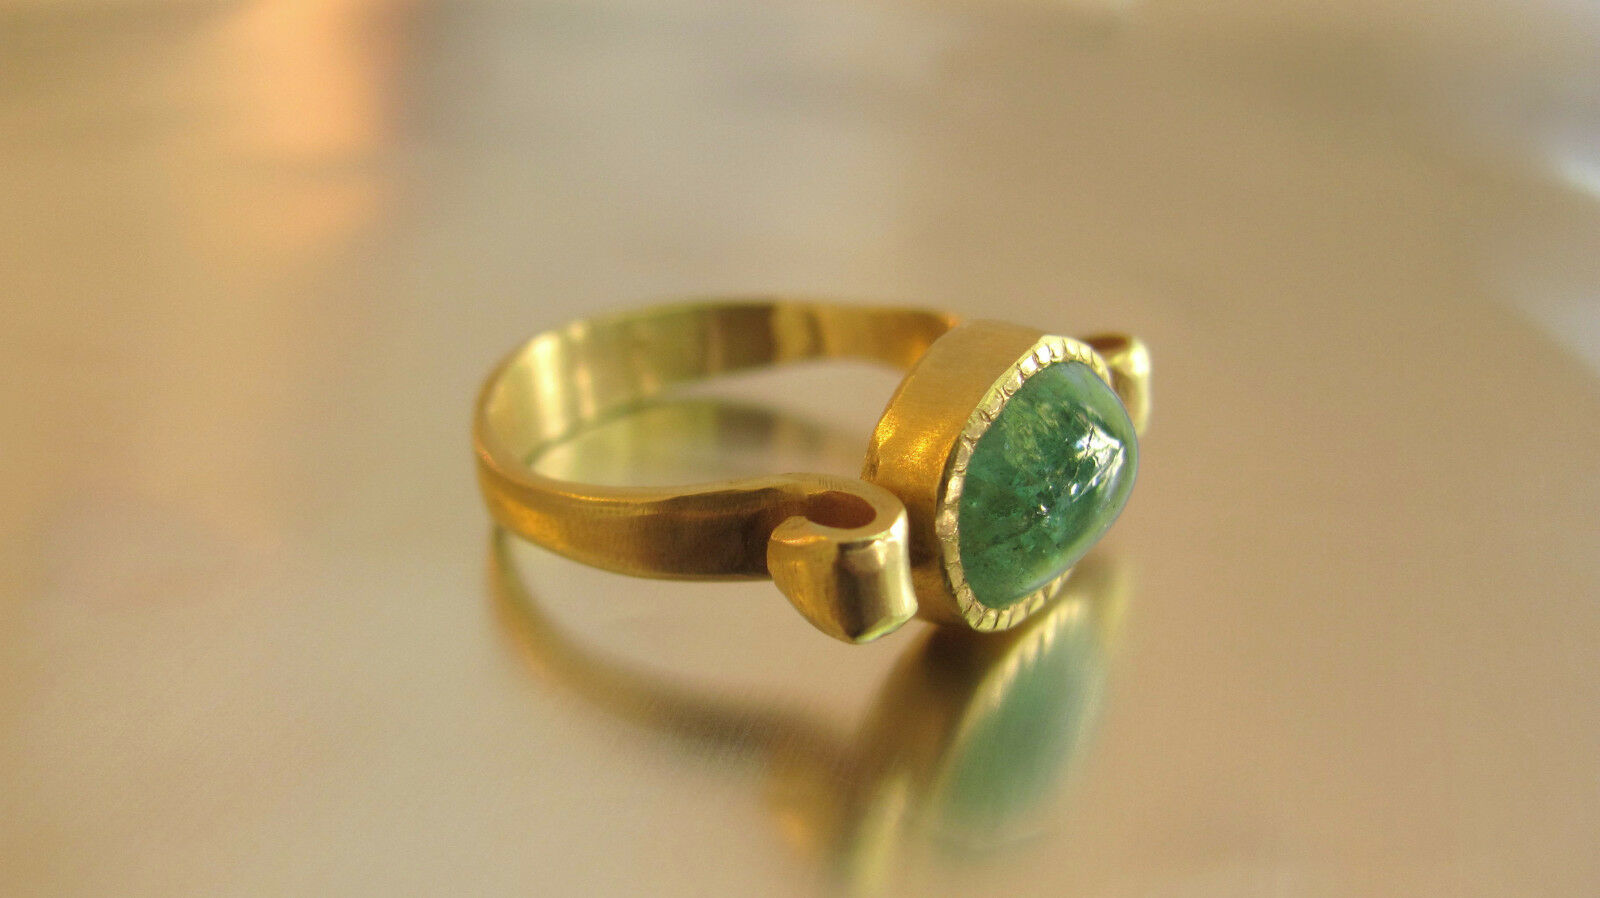 14K yellow gold unique Design ring with Emerald.Handmade unusual gold ring.